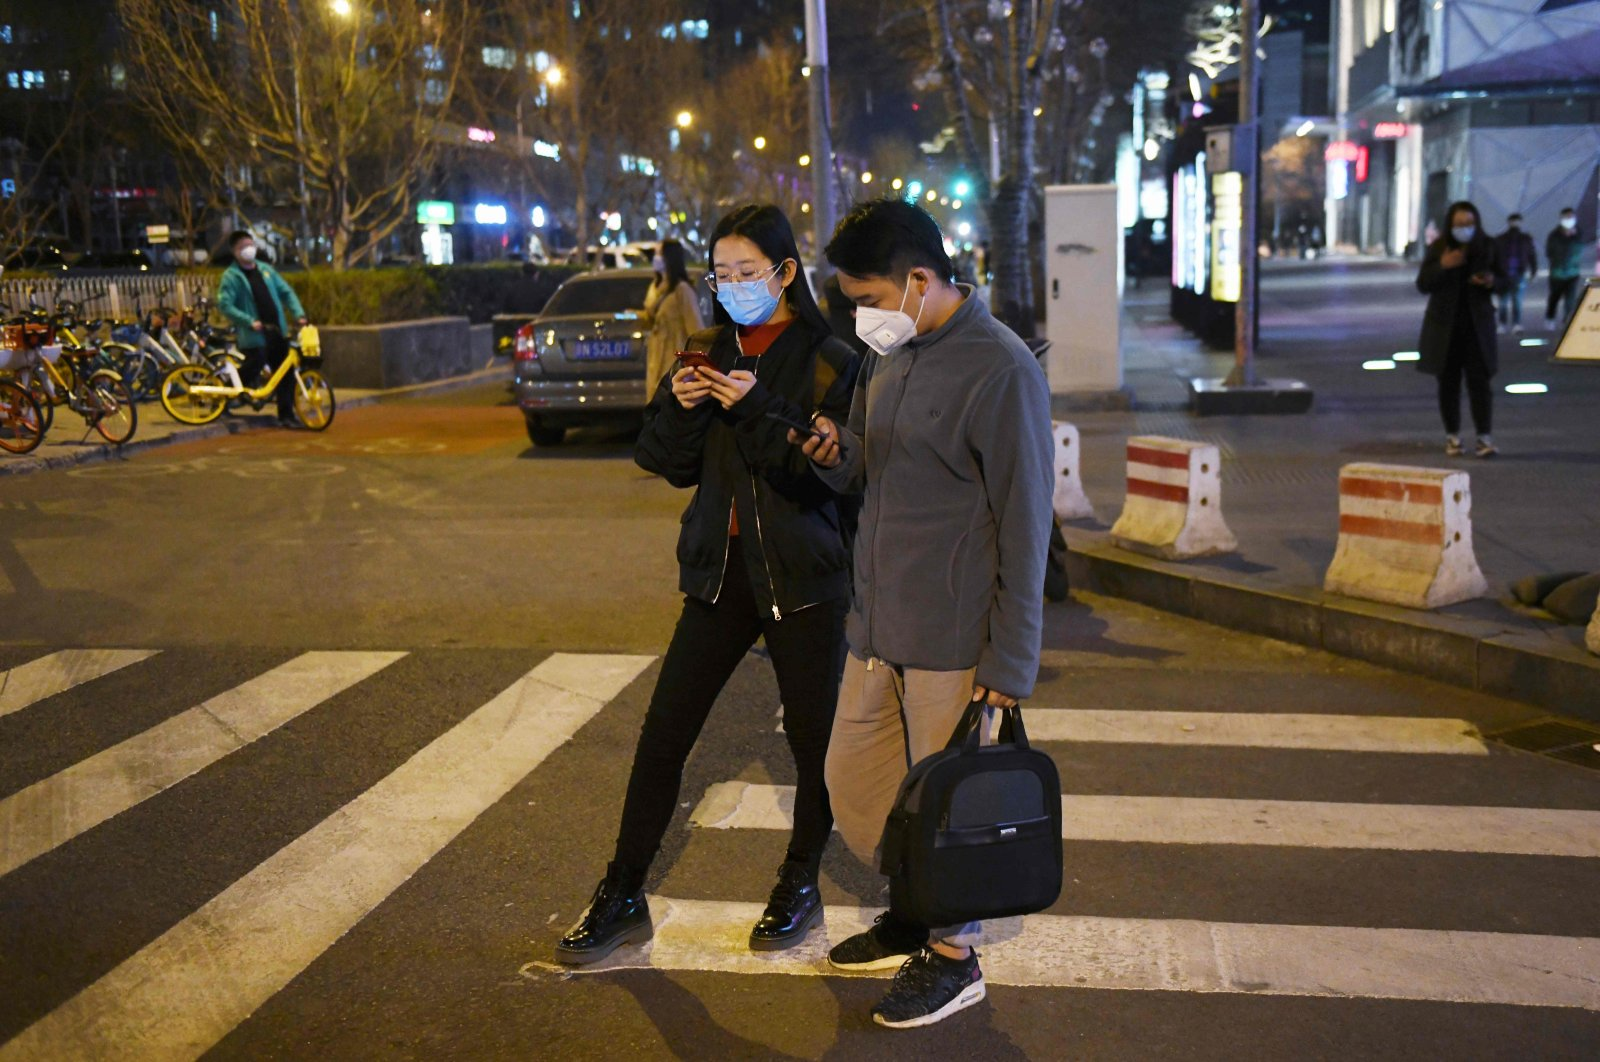 A couple, wearing masks amid concerns over the spread of the coronavirus, cross a road, Beijing. March 20, 2020. (AFP Photo)